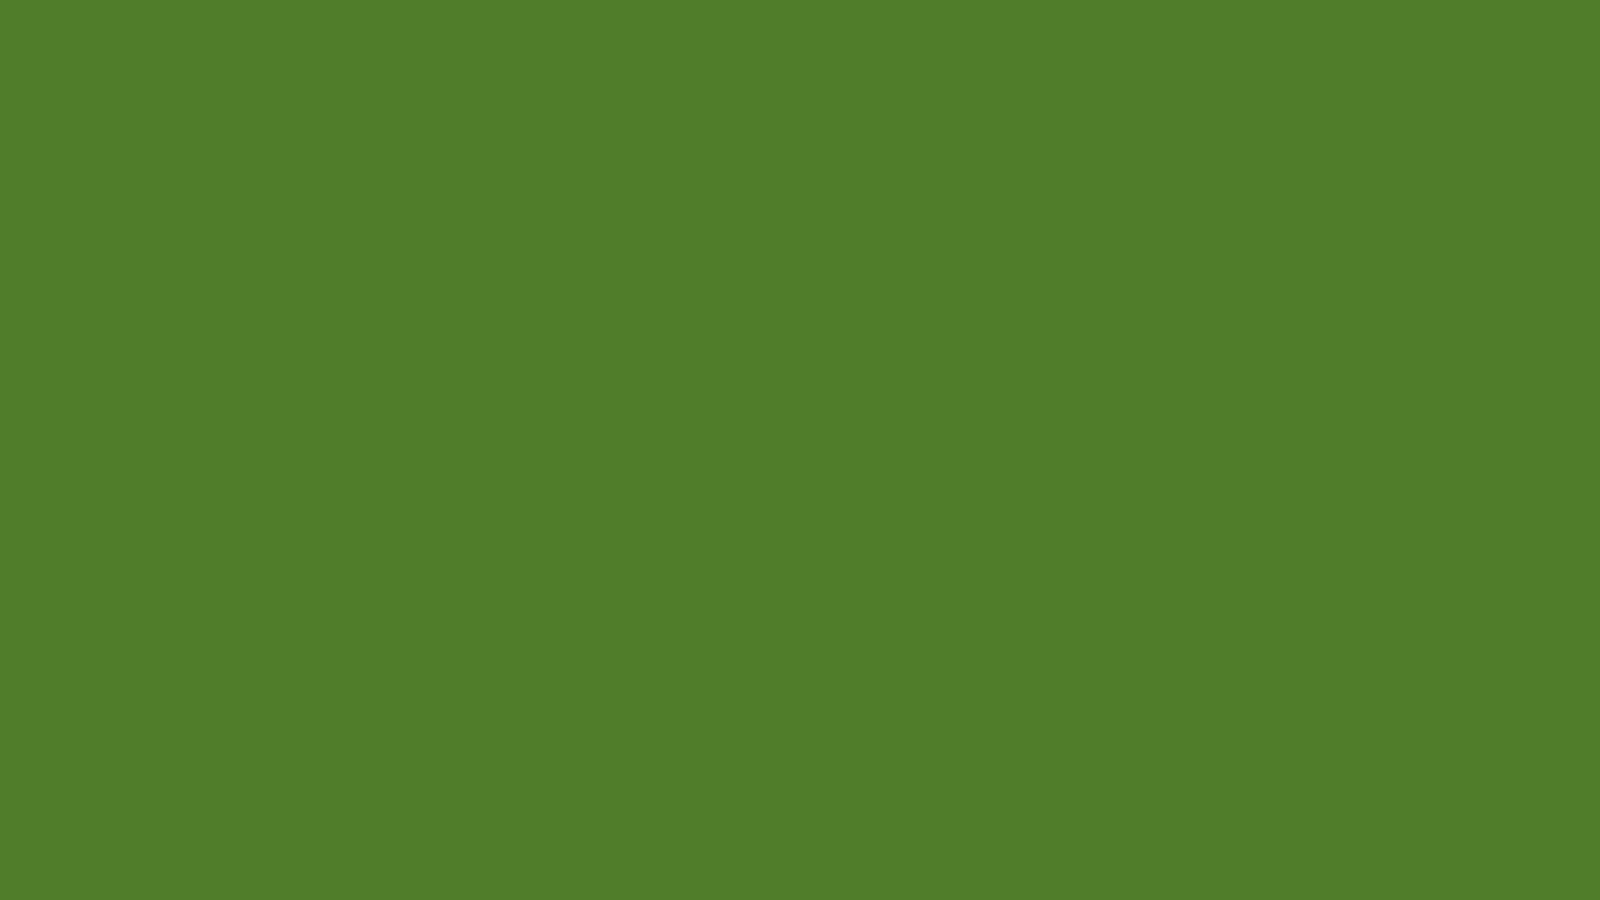 Green solid color background view and download the below background 1600x900